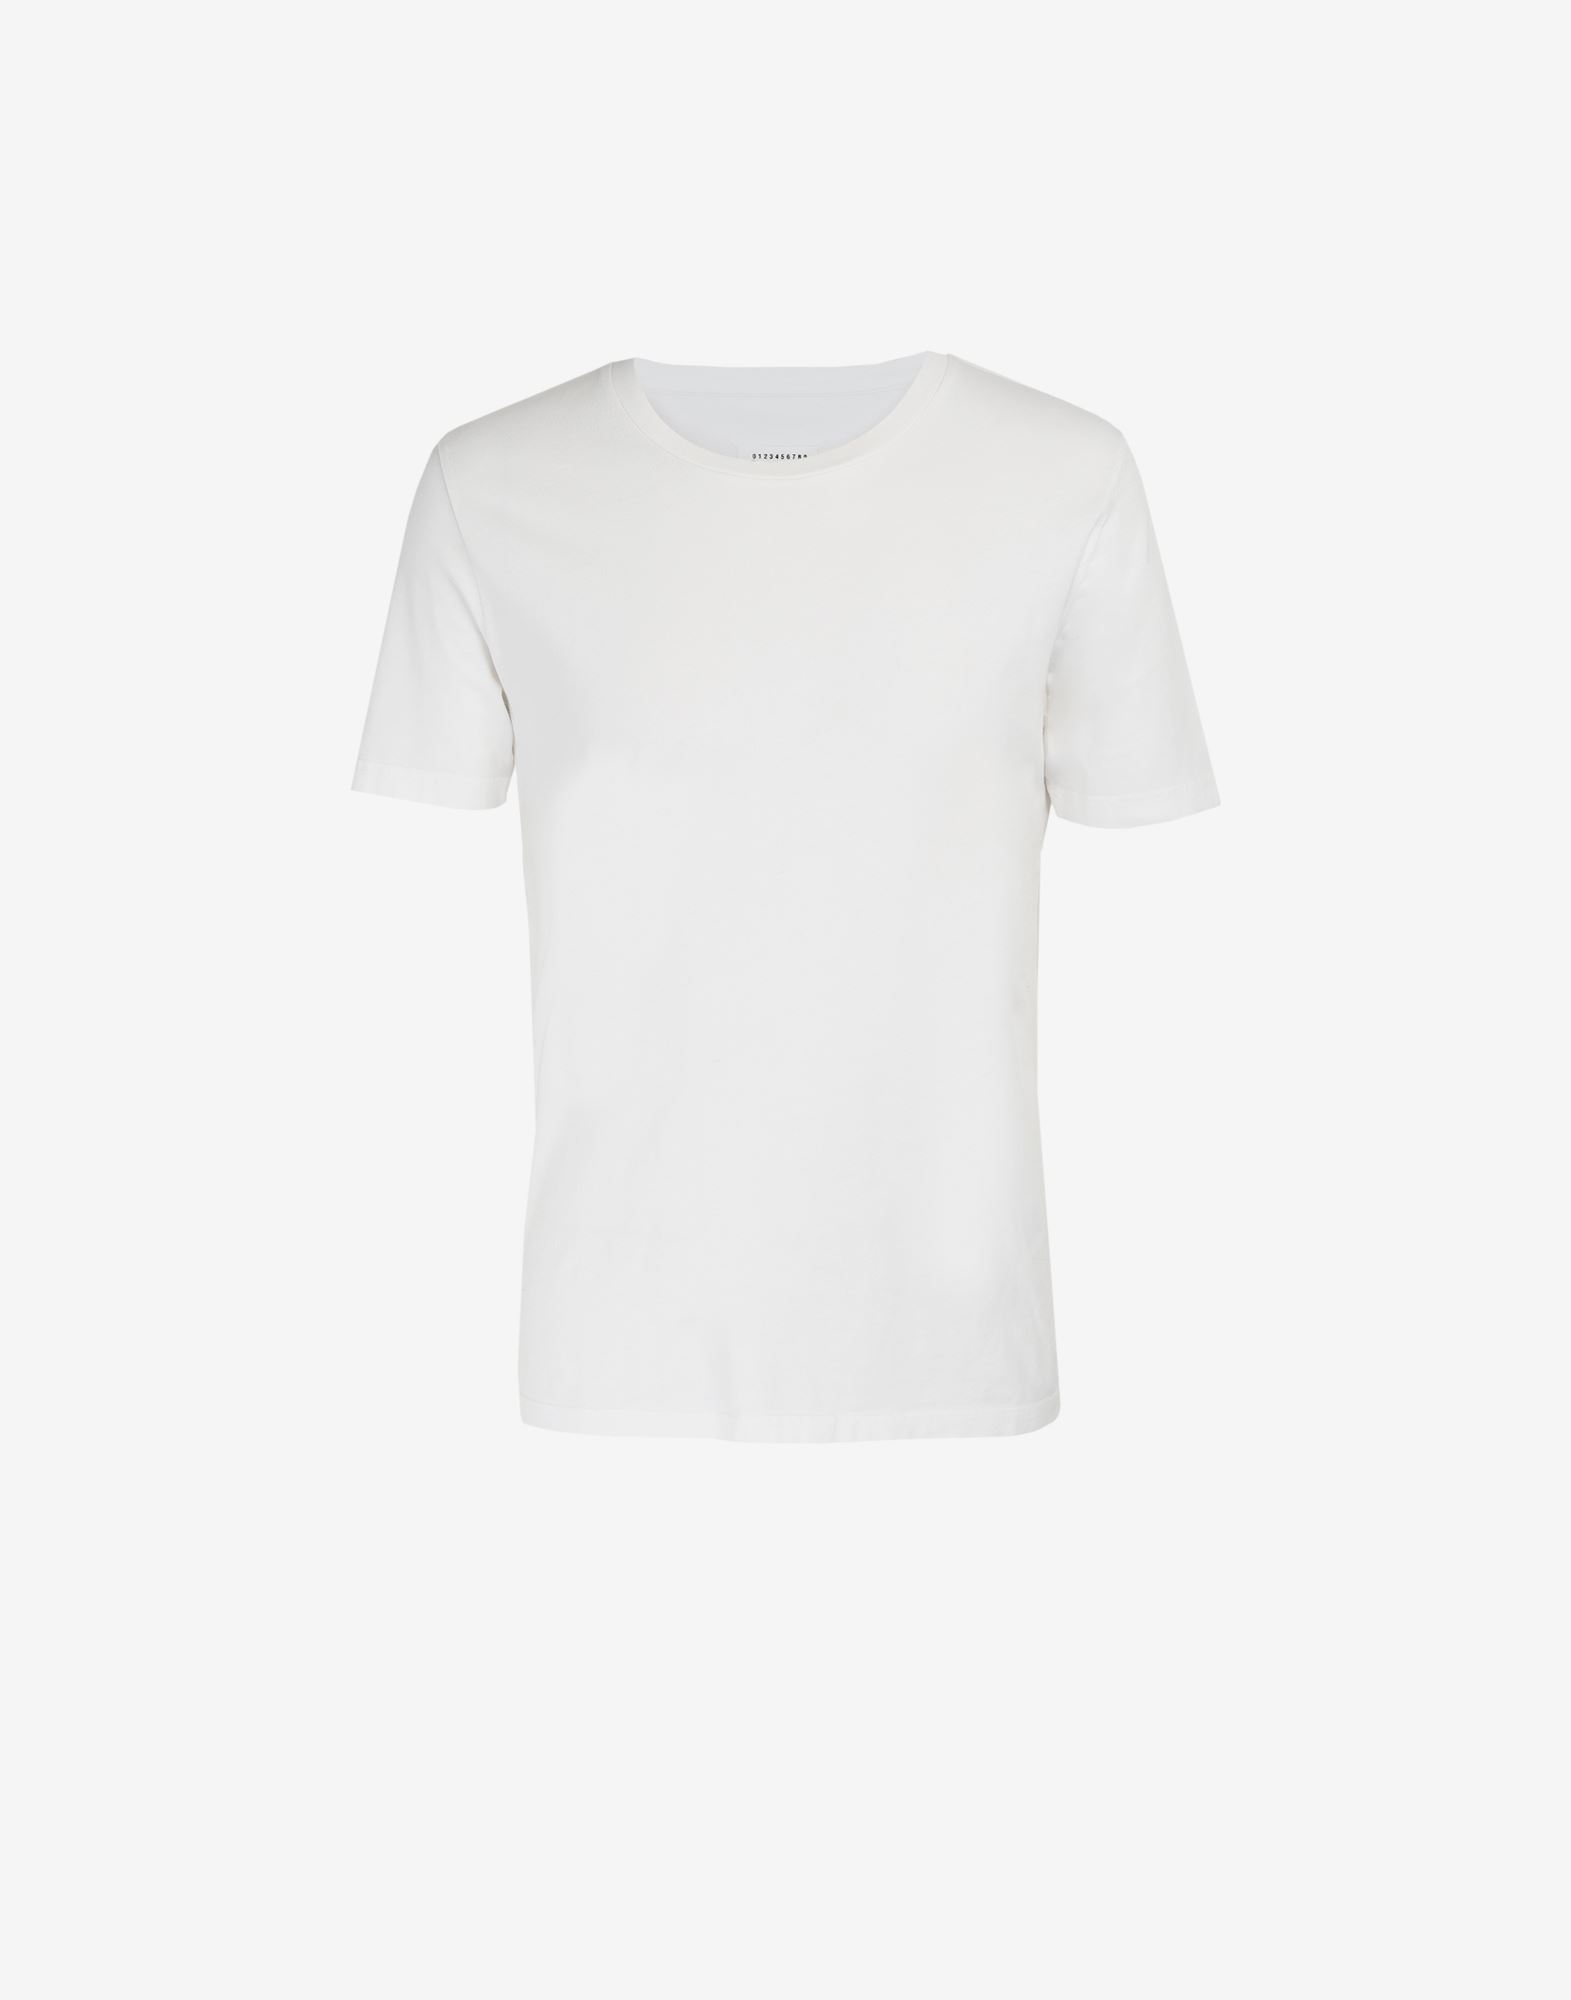 MAISON MARGIELA Classic cotton T-shirt Short sleeve t-shirt Man f